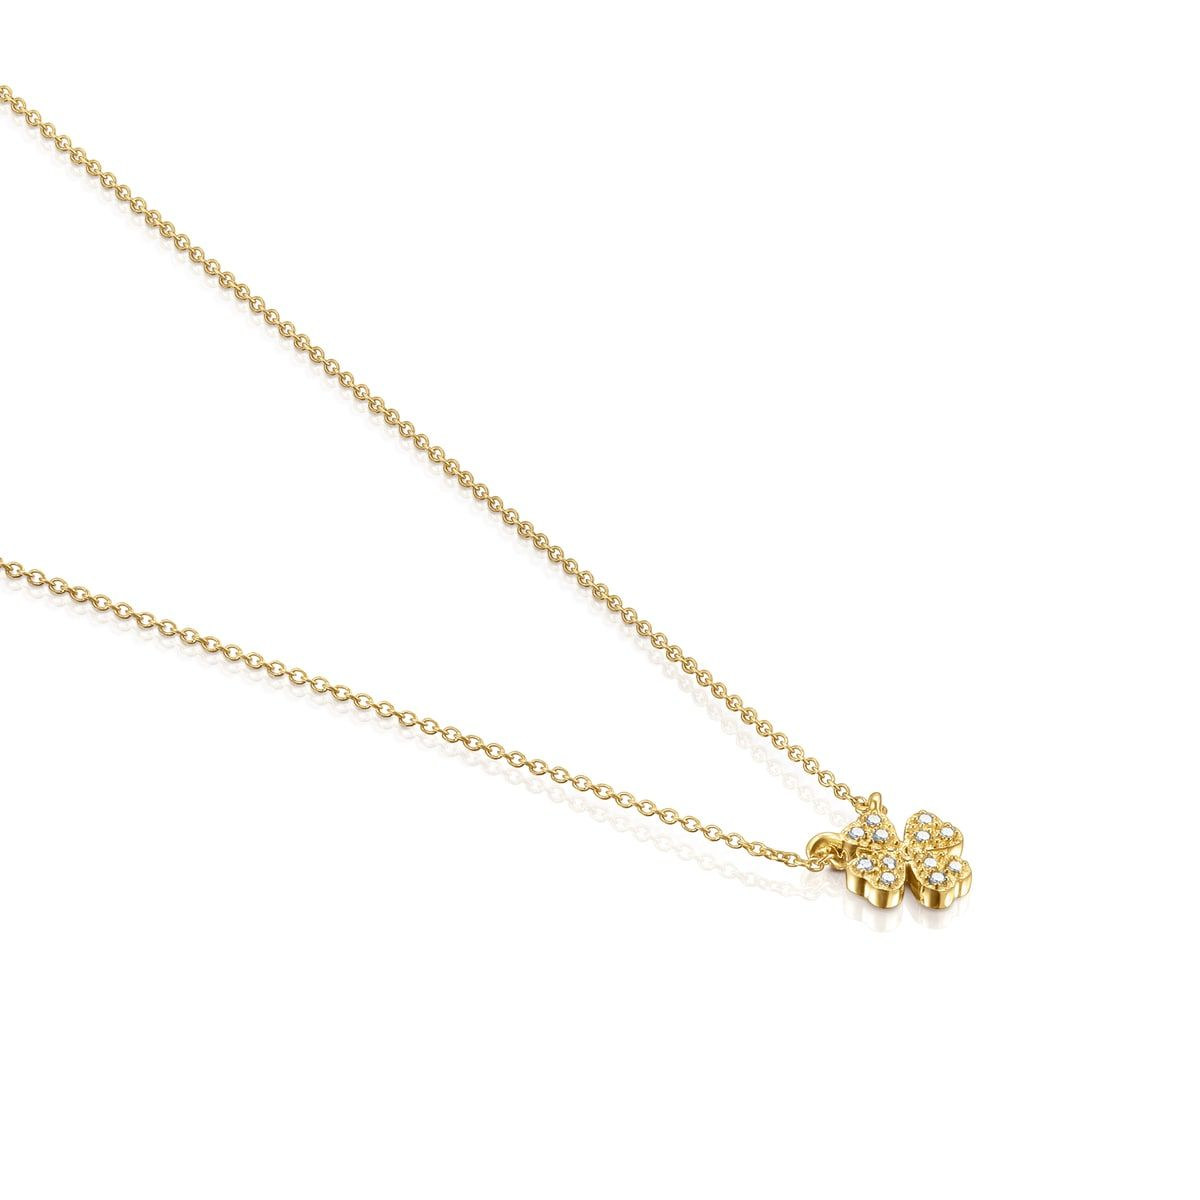 Gold TOUS Good Vibes clover Necklace with Diamonds - TOUS